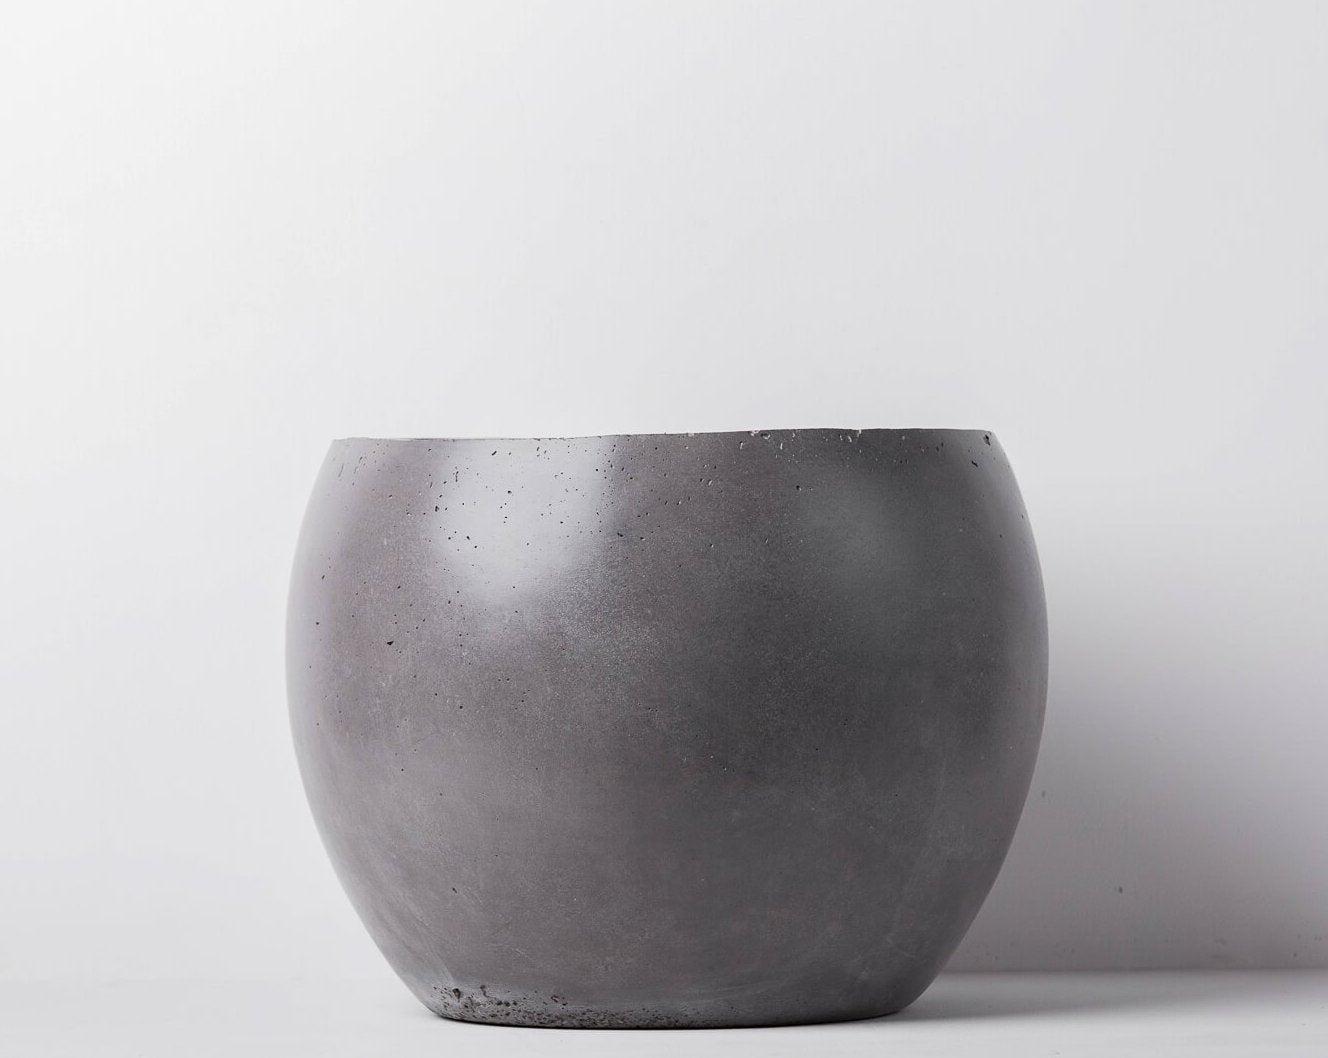 Concrete Meteor Planter - Charcoal-Eliteearth